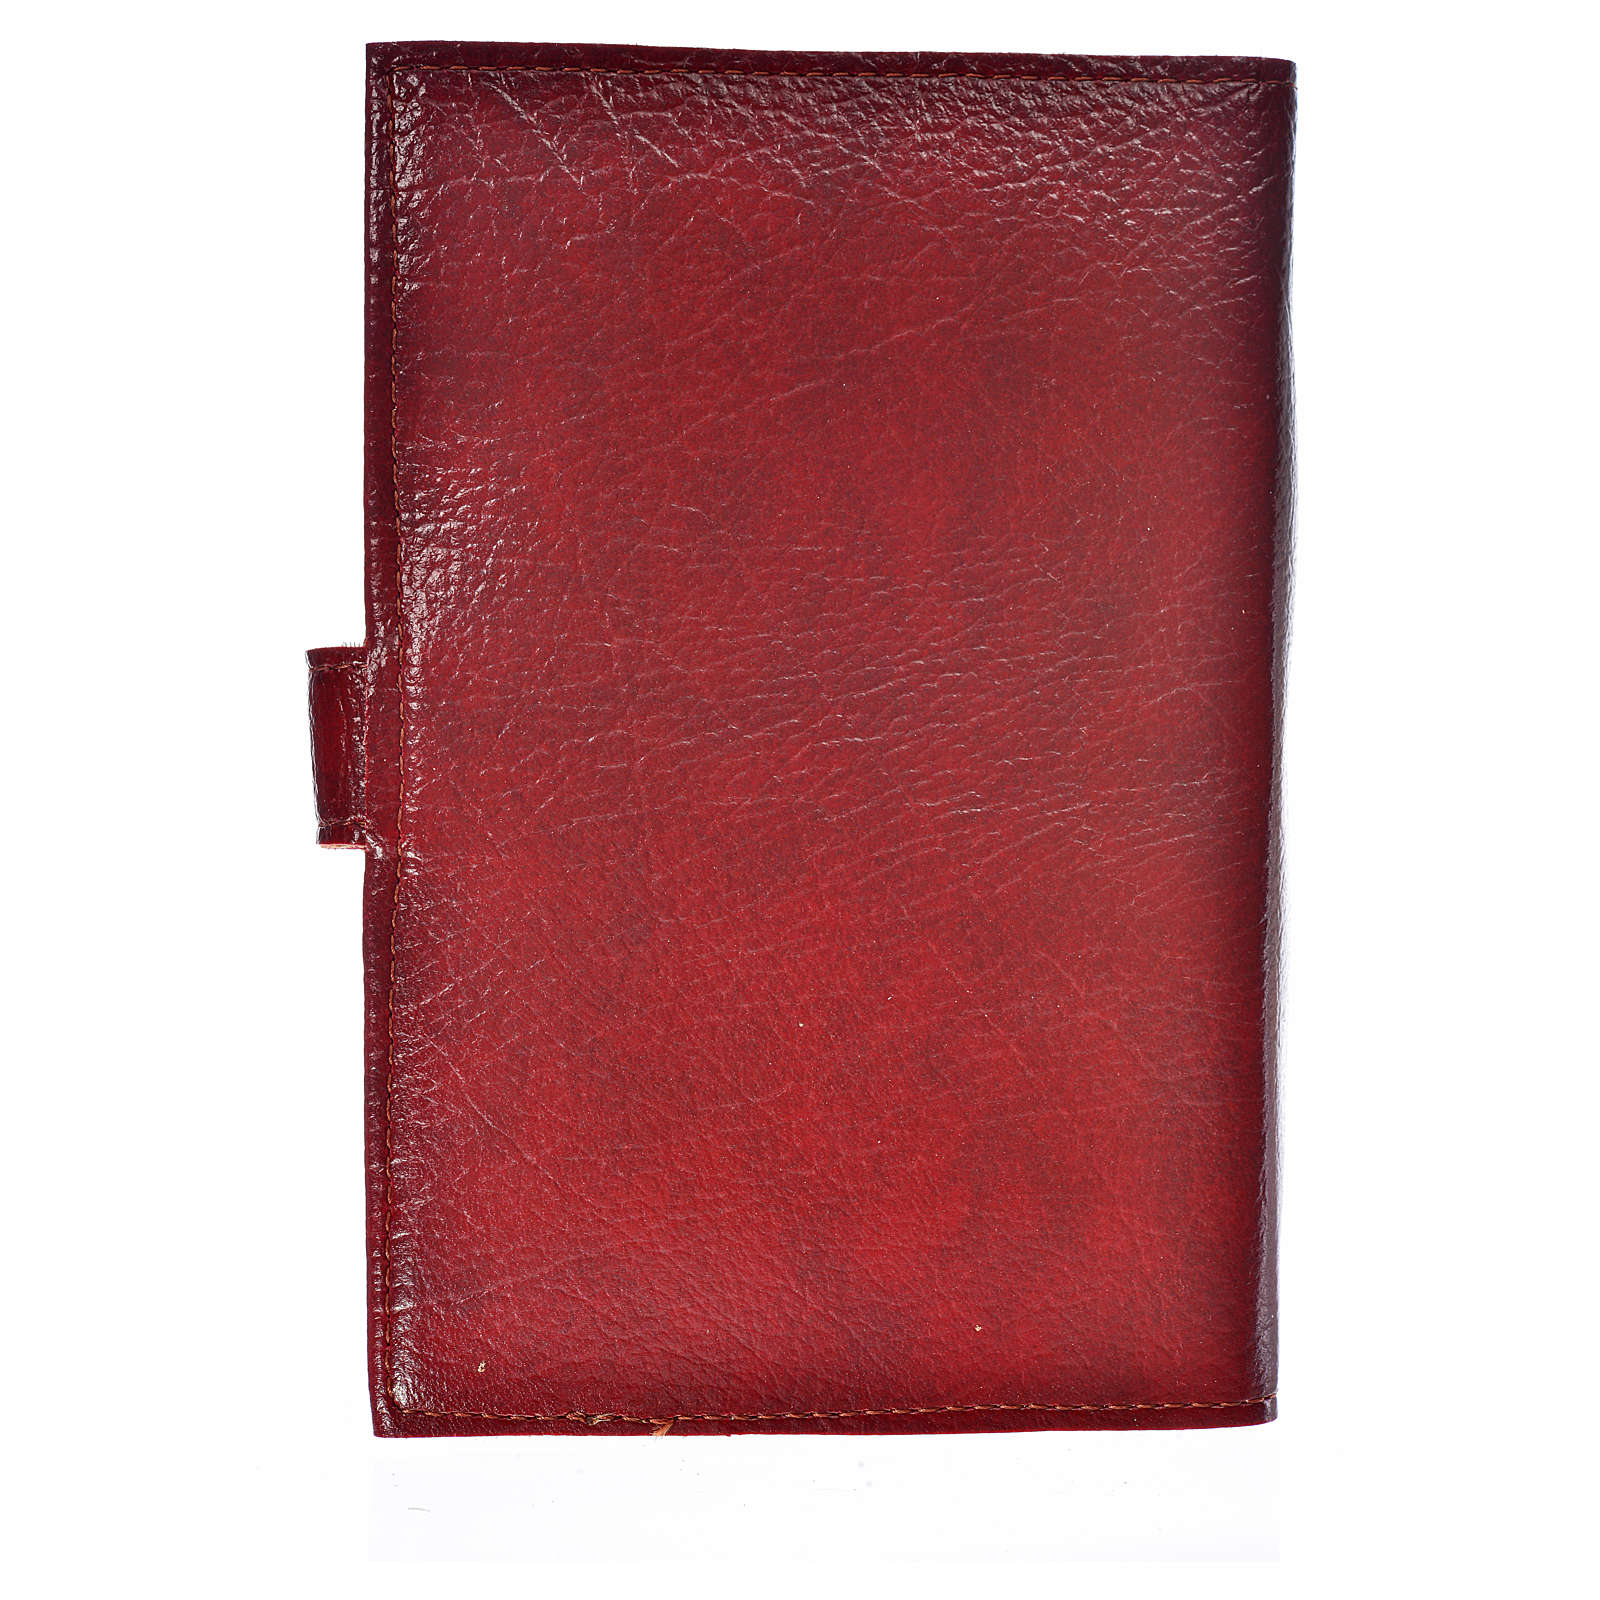 Cover for Morning and Evening prayer with image of Our Lady of Vladimir in burgundy leather imitation 4